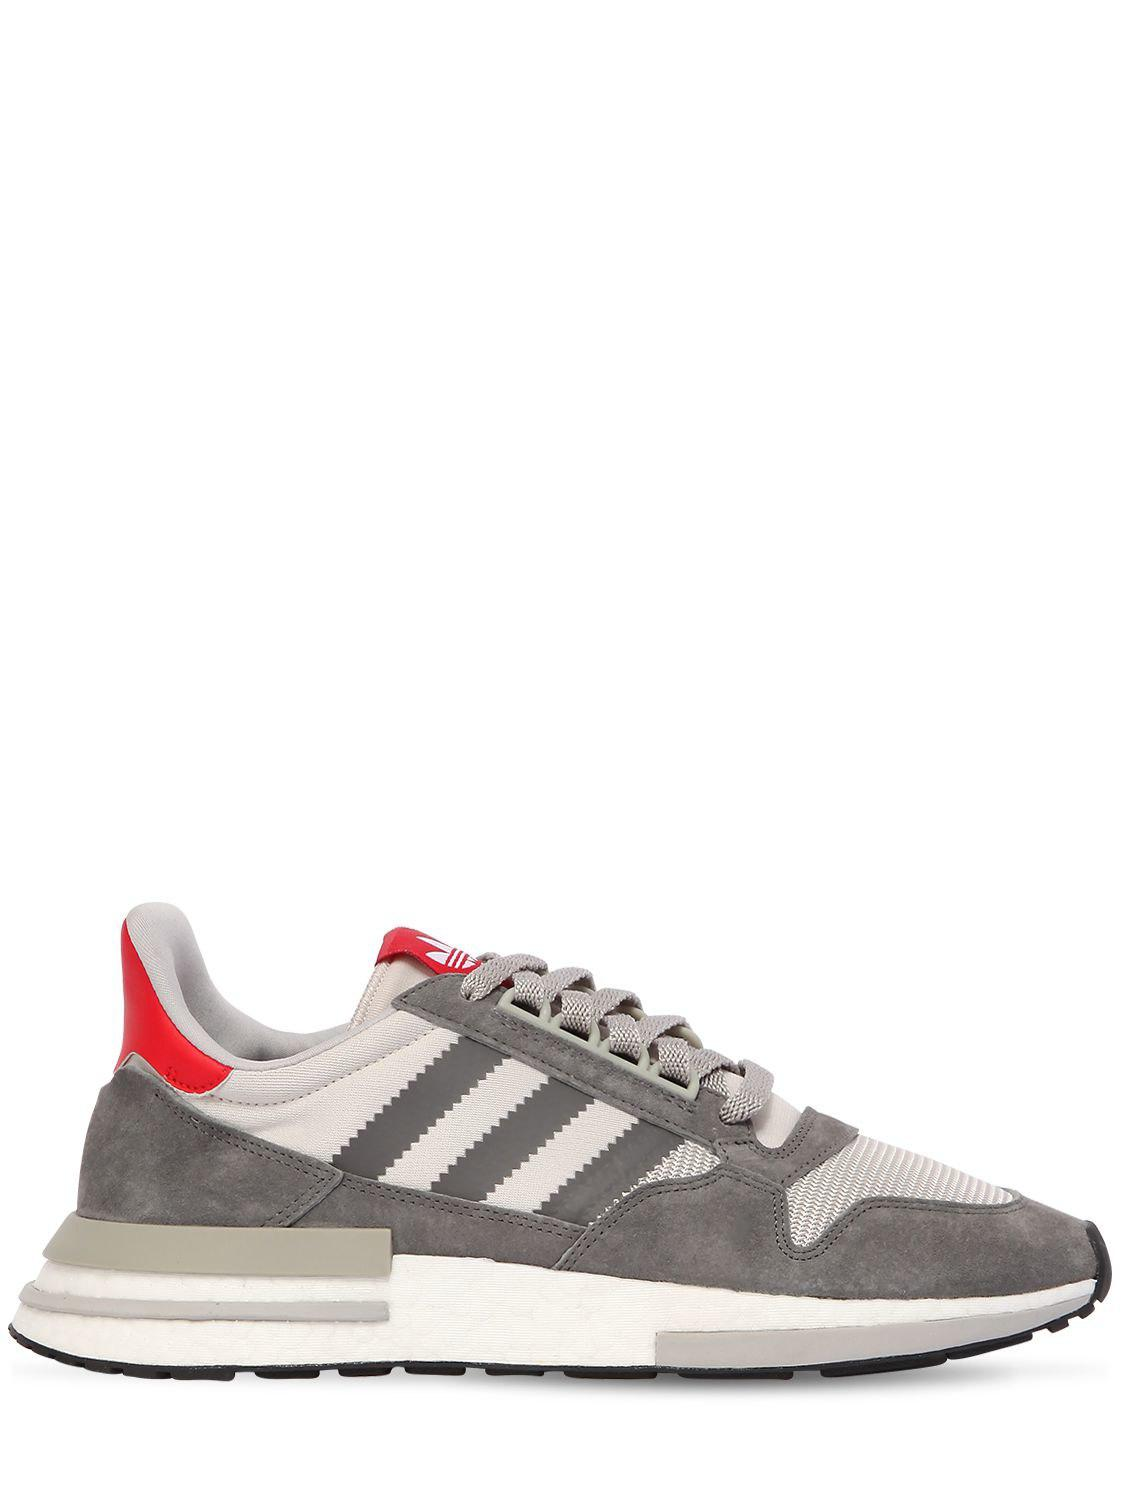 sale retailer e05b1 cd7b7 adidas Originals. Sneakers